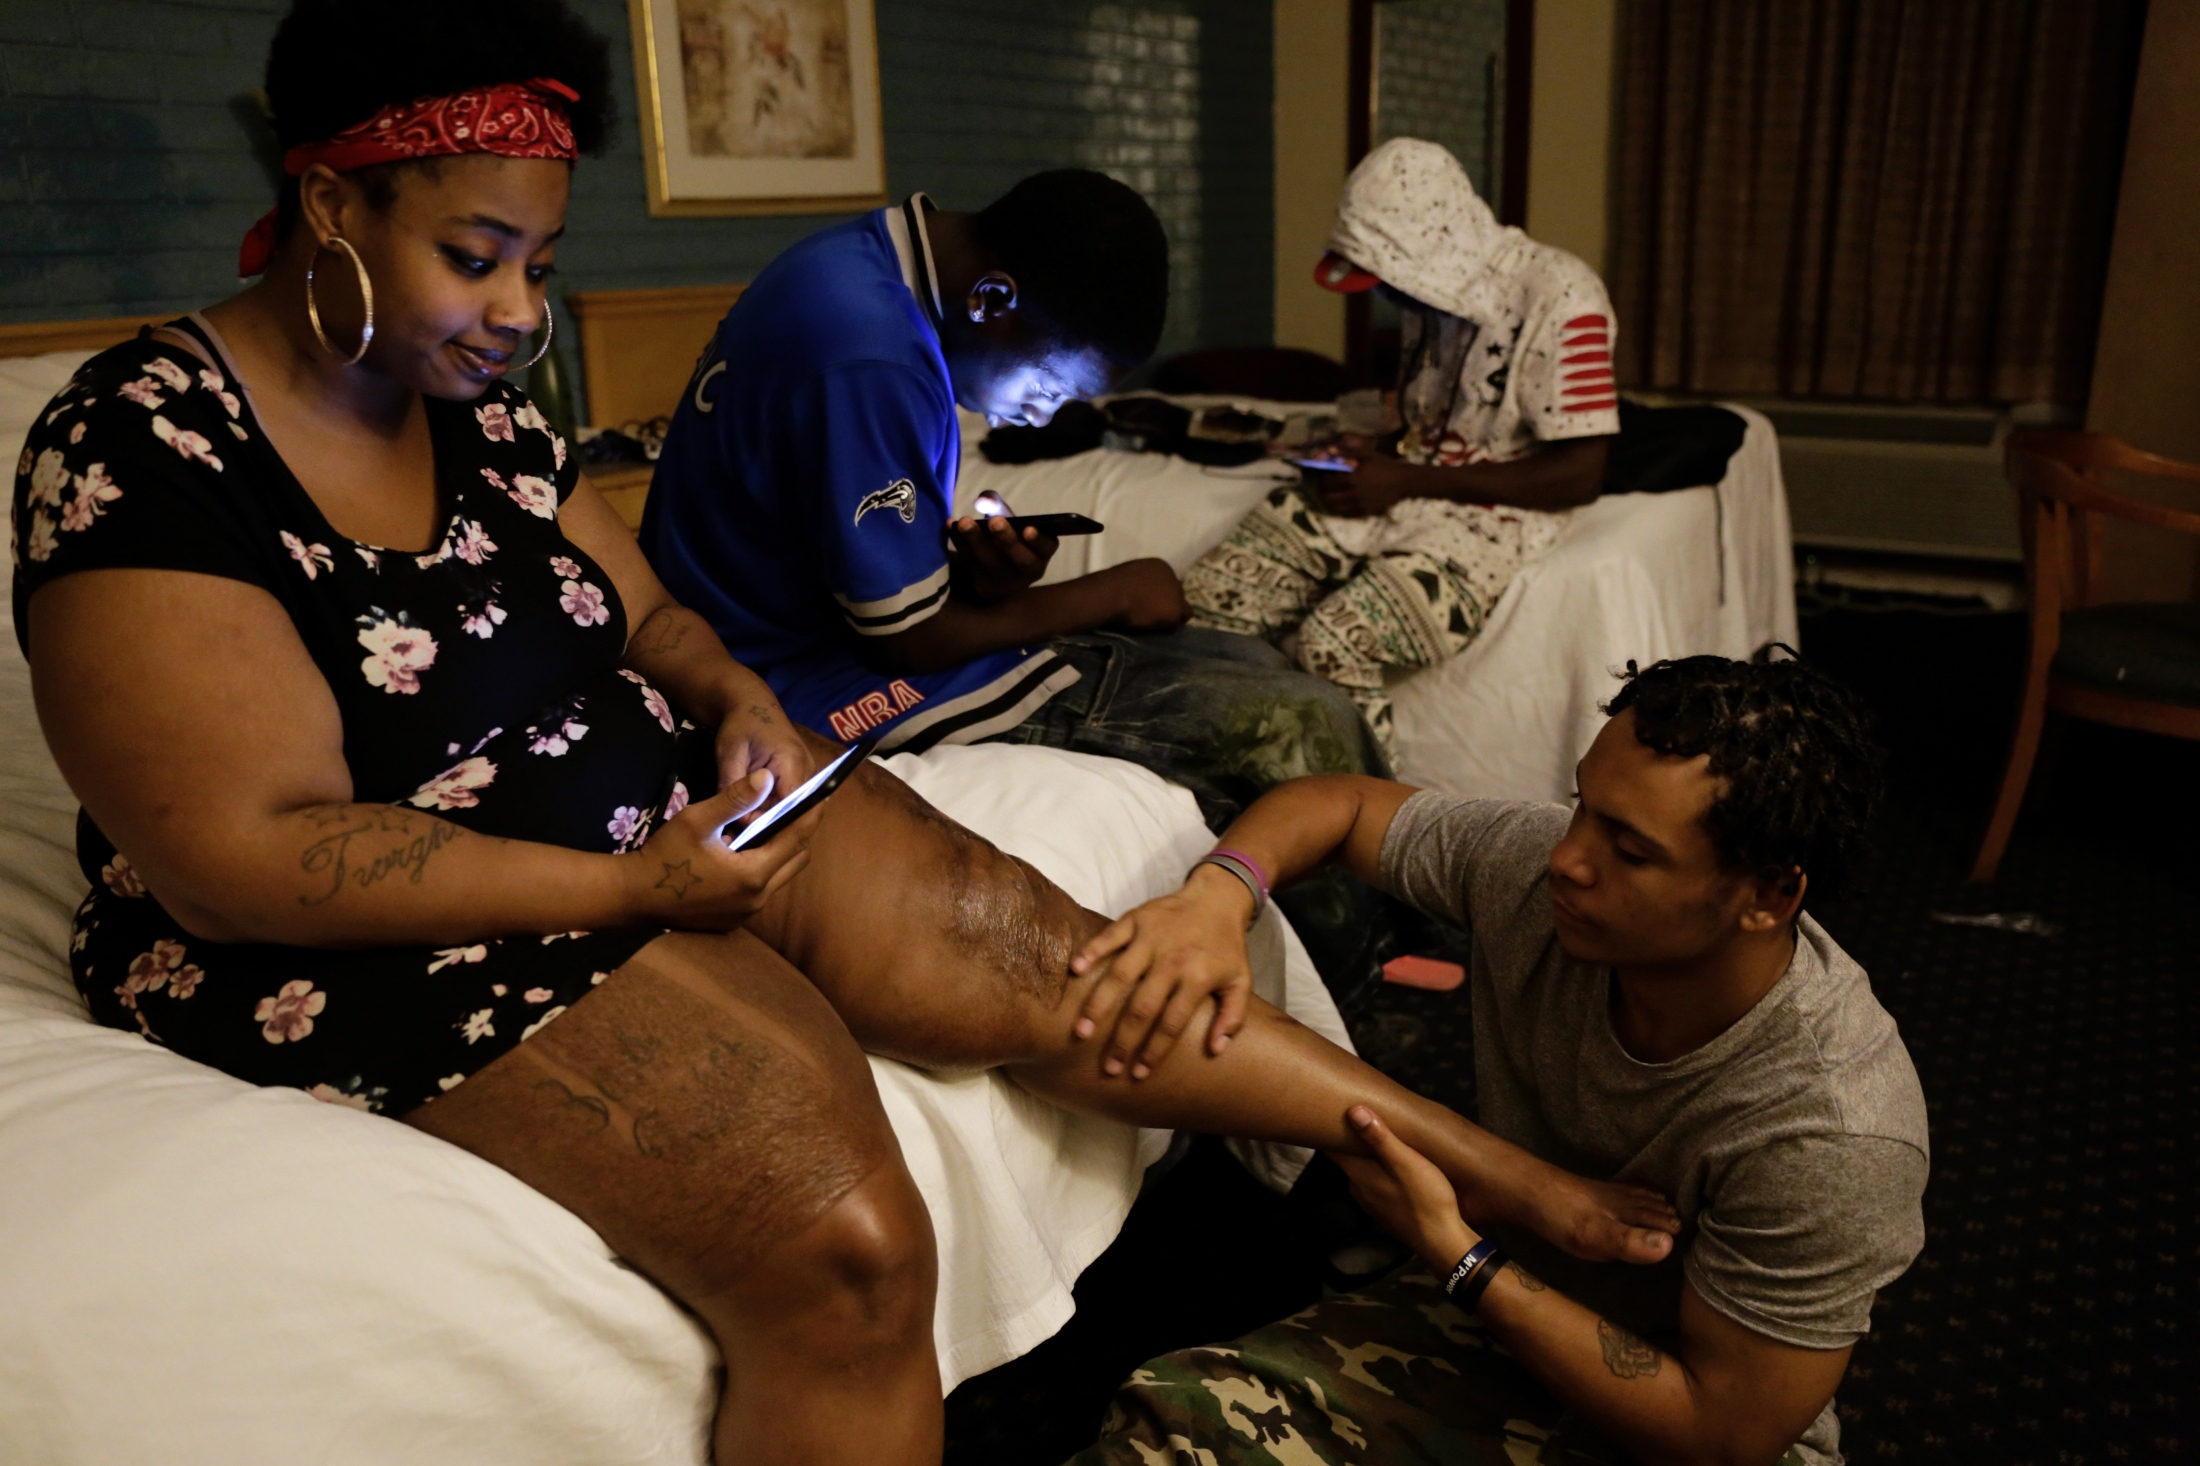 Redd, who only goes by her first name (far left) gets a vaseline rub-down by Mike McLaughlin at the LaCasa Motel in Tallahassee, Fla. on Aug. 14, 2018. Their friends Ladarius Simmons (center left) and Jammoris Mosely (center right) interact with their cell phones. Redd has been staying at the motel for about two weeks, paying for the room each night with sex work, before McLaughlin, Simmons and Moseley moved in. They manage to stay at the motel with more people in a room than is allowed by changing names on the rental agreement. This group of homeless youth in Tallahassee relies on social networks for shelter and emotional support.